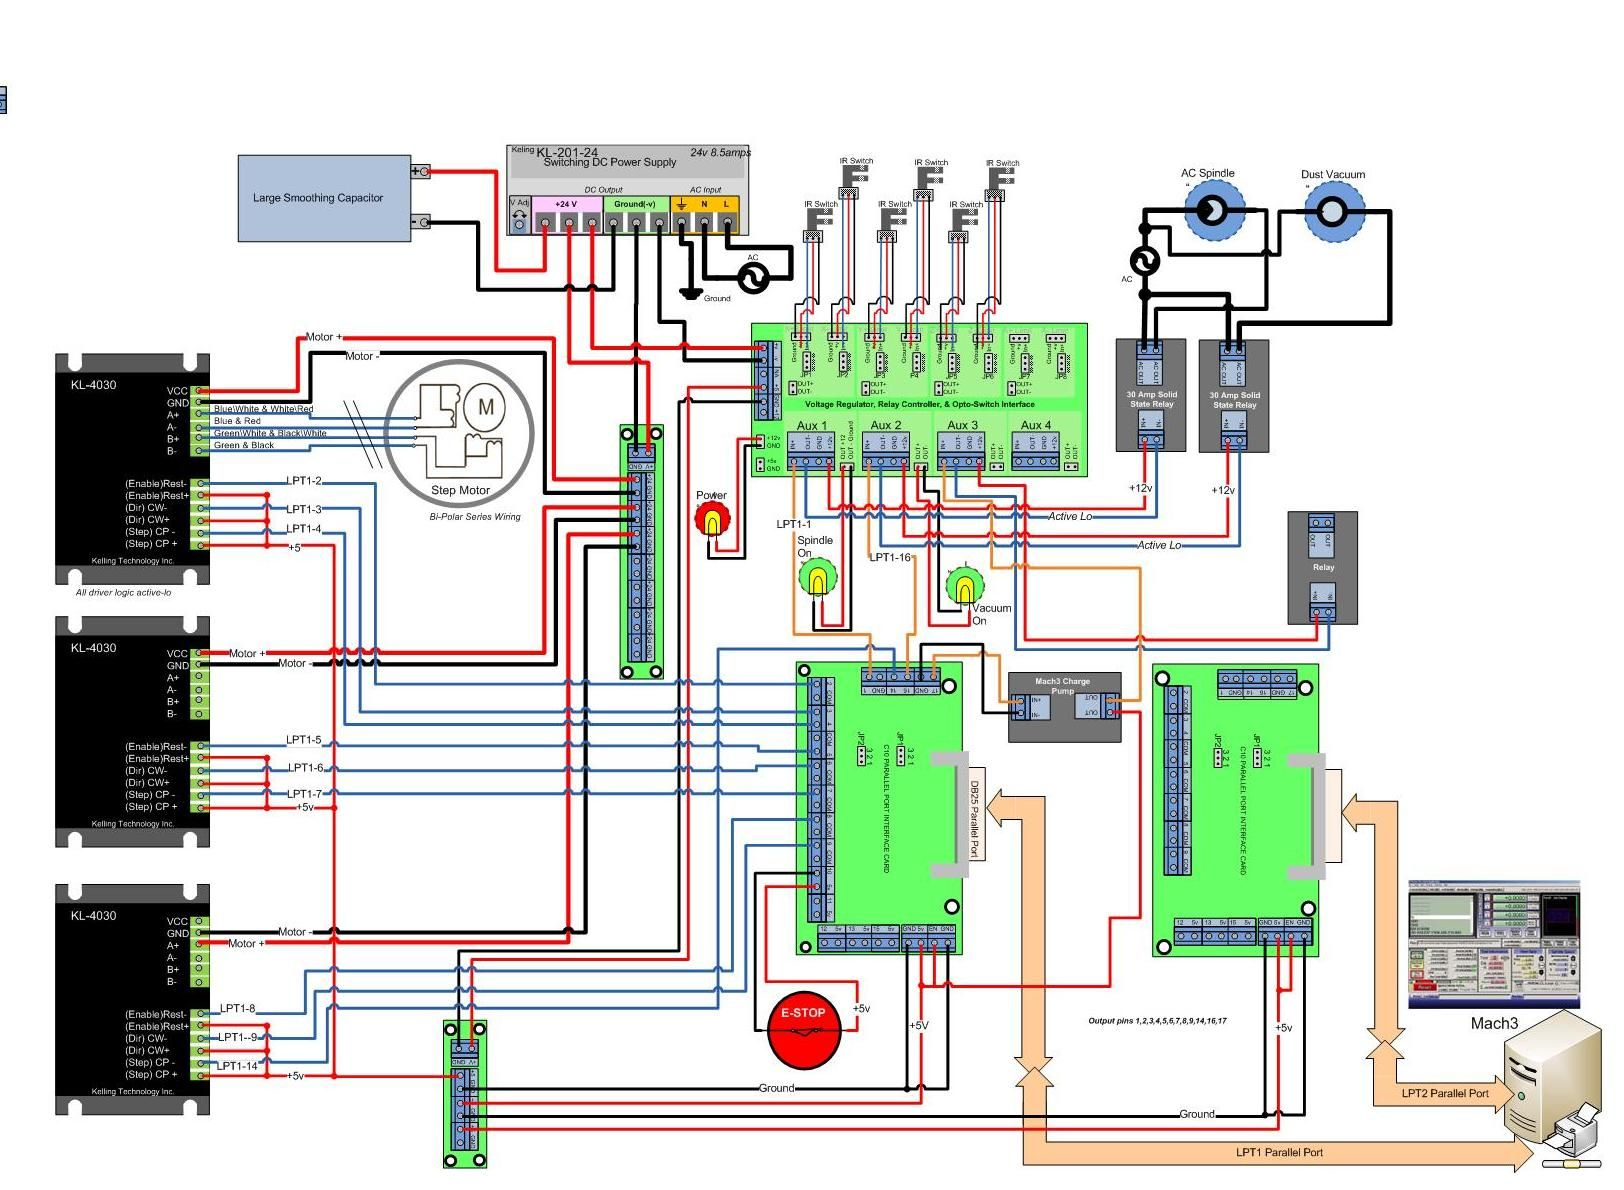 de60b189cc98ab72eeb9d2e3f3d349dc cnc wiring diagram cnc pinterest cnc wiring diagram at edmiracle.co